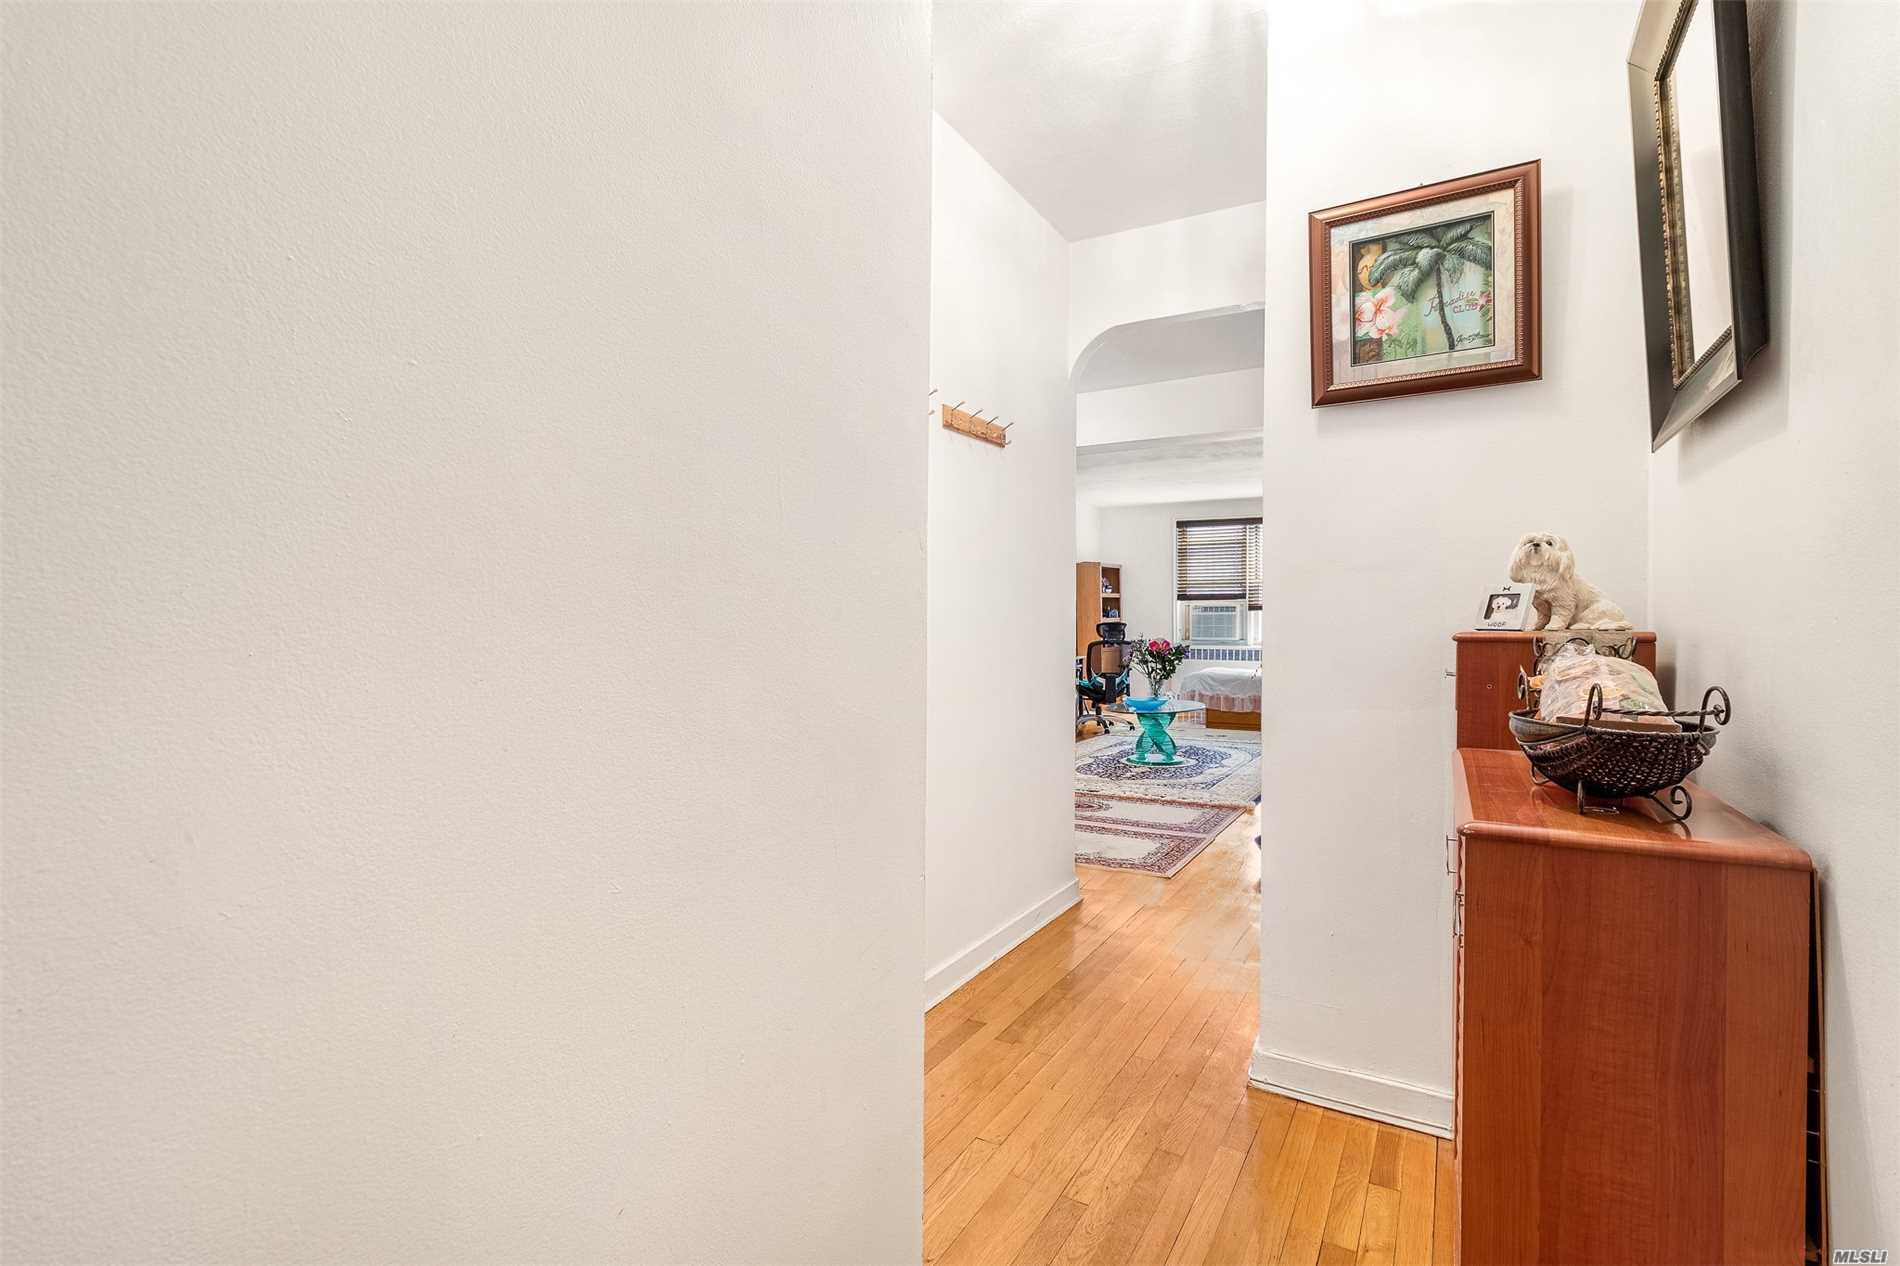 True Full Large One Bedroom South Facing Corner Unit. Spacious Layout With Plenty Of Closets For Storage And Many Windows. Recently-Renovated In The Heart of Rego Park Offers Tremendous Value. Updated Eat In Kitchen. Hardwood Floors Throughout. Maintenance All Included Exp Electricity. Conveniently Located To Subways, Buses, Shopping, School Etc. Move Right In! The Massive King-Sized Bedroom Features A Walk-In Closet And Southern Exposure With Two Windows.This Rare Apartment Is Price For Sell!